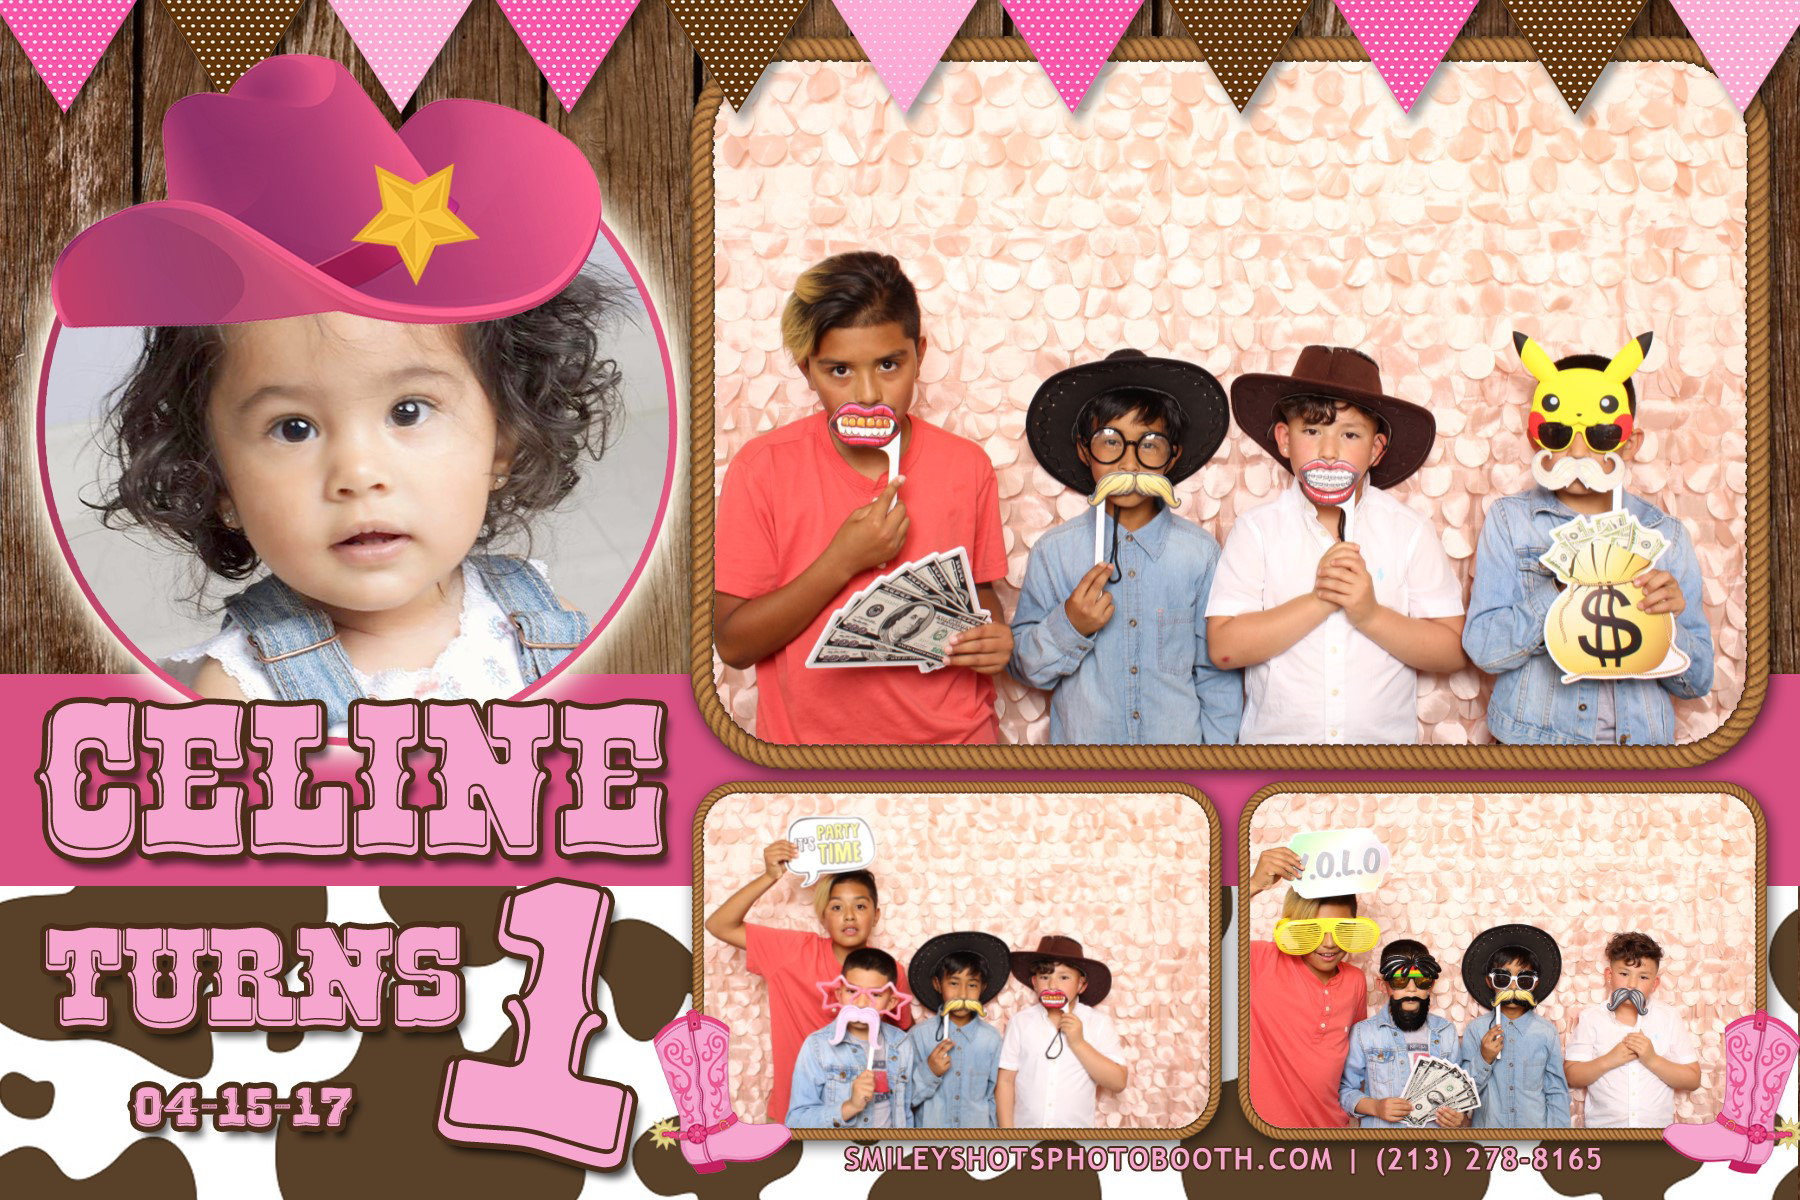 Celine turns 1 Smiley Shots Photo Booth Photobooth (19).png